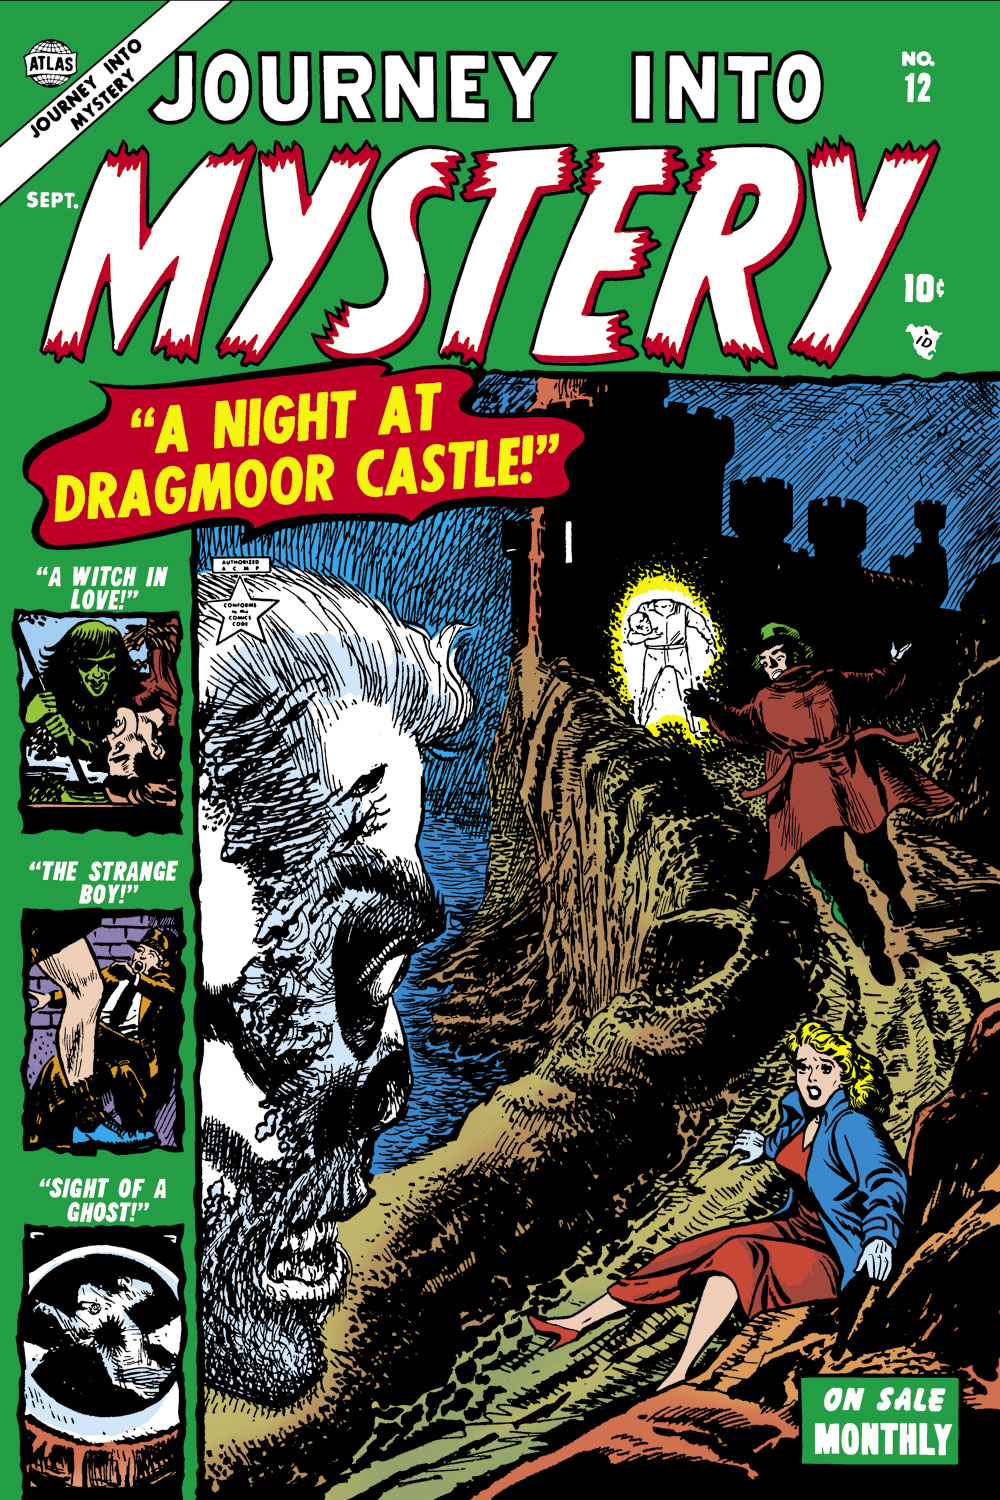 Journey Into Mystery (1952) #12